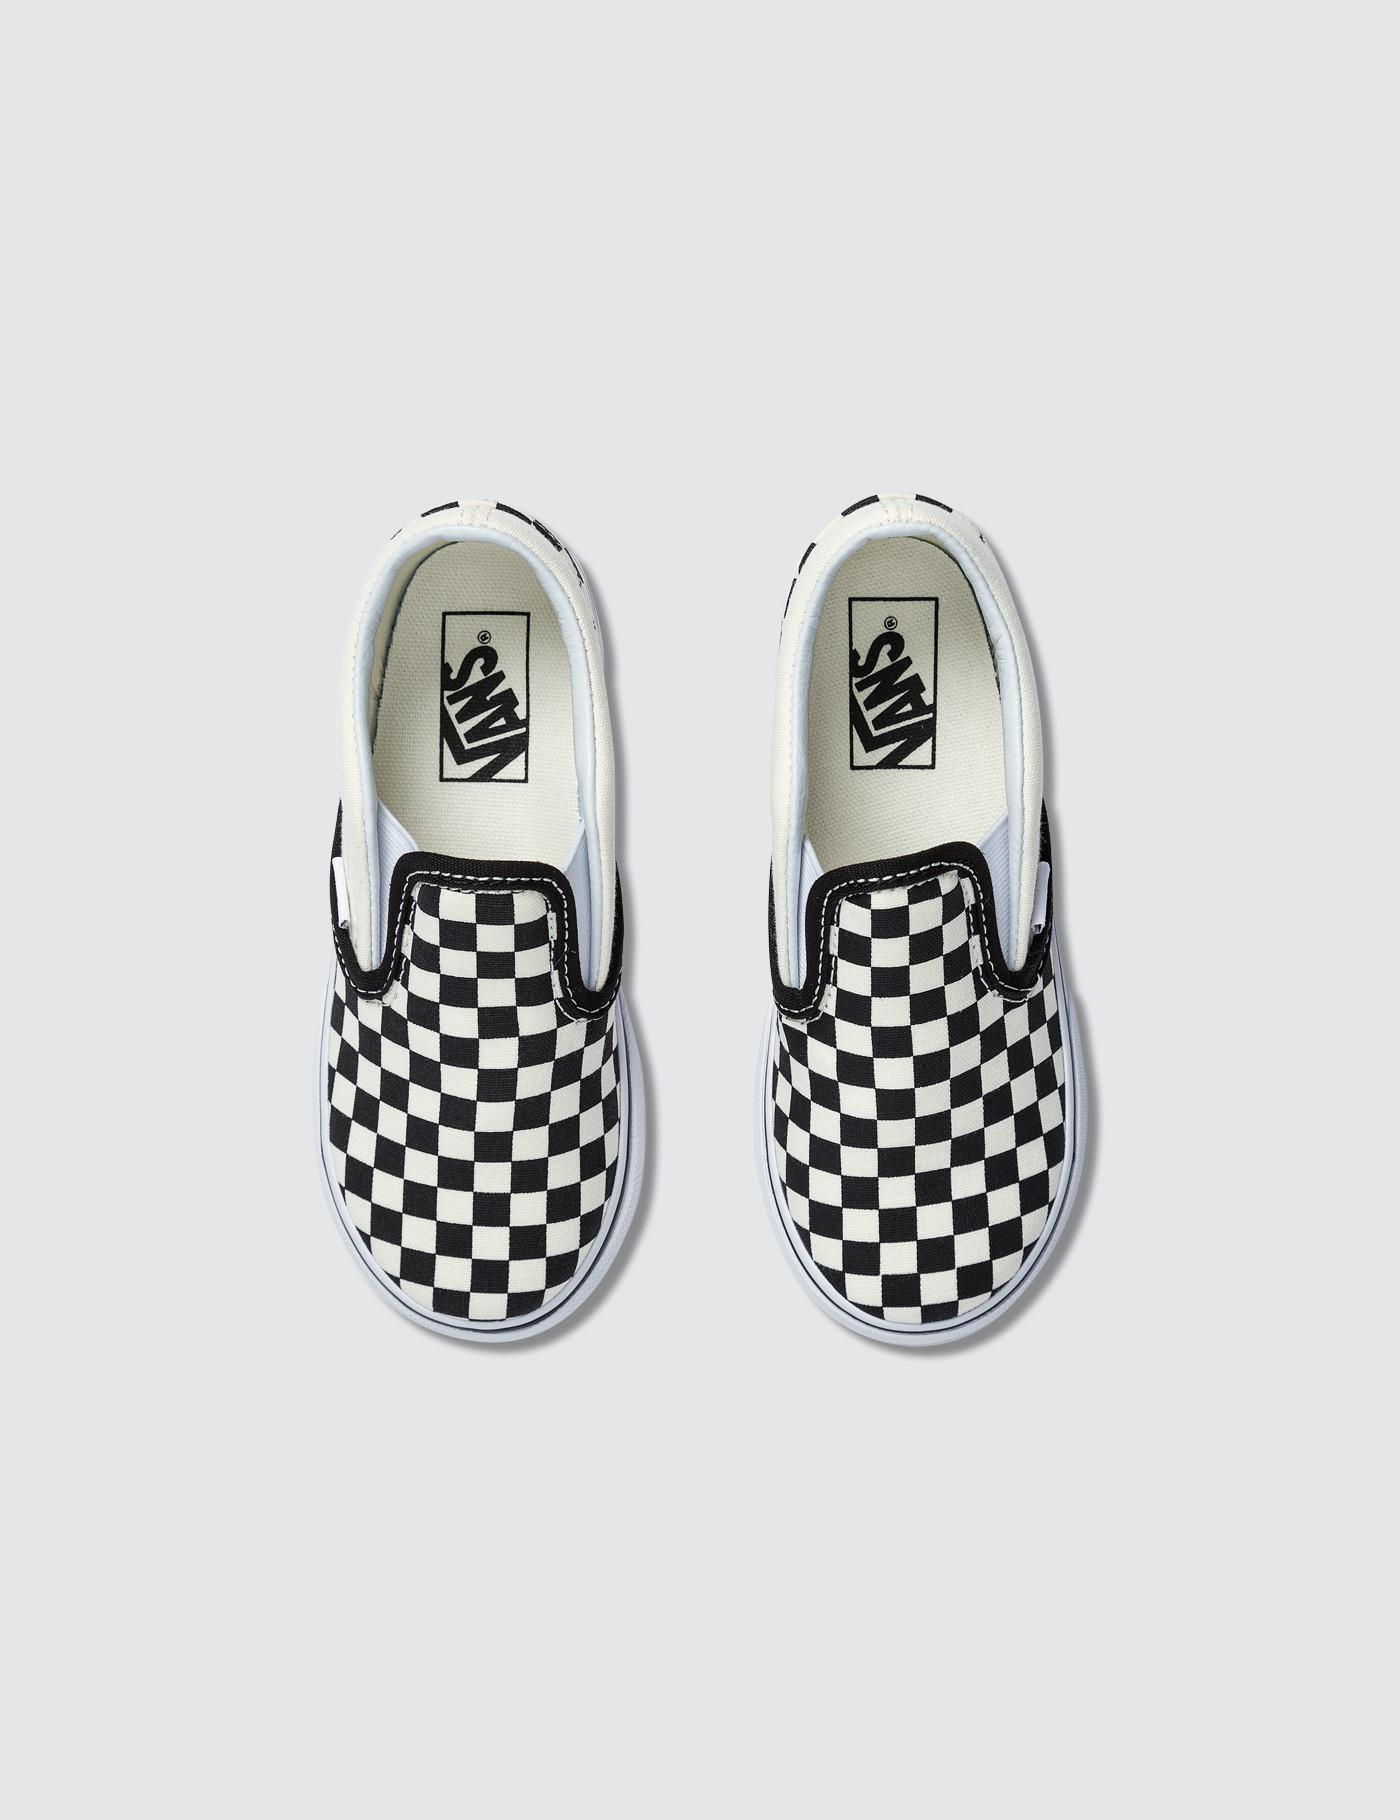 73016d6a33aa Lyst - Vans Classic Slip On Canvas Checkerboard Trainers in White for Men -  Save 37%